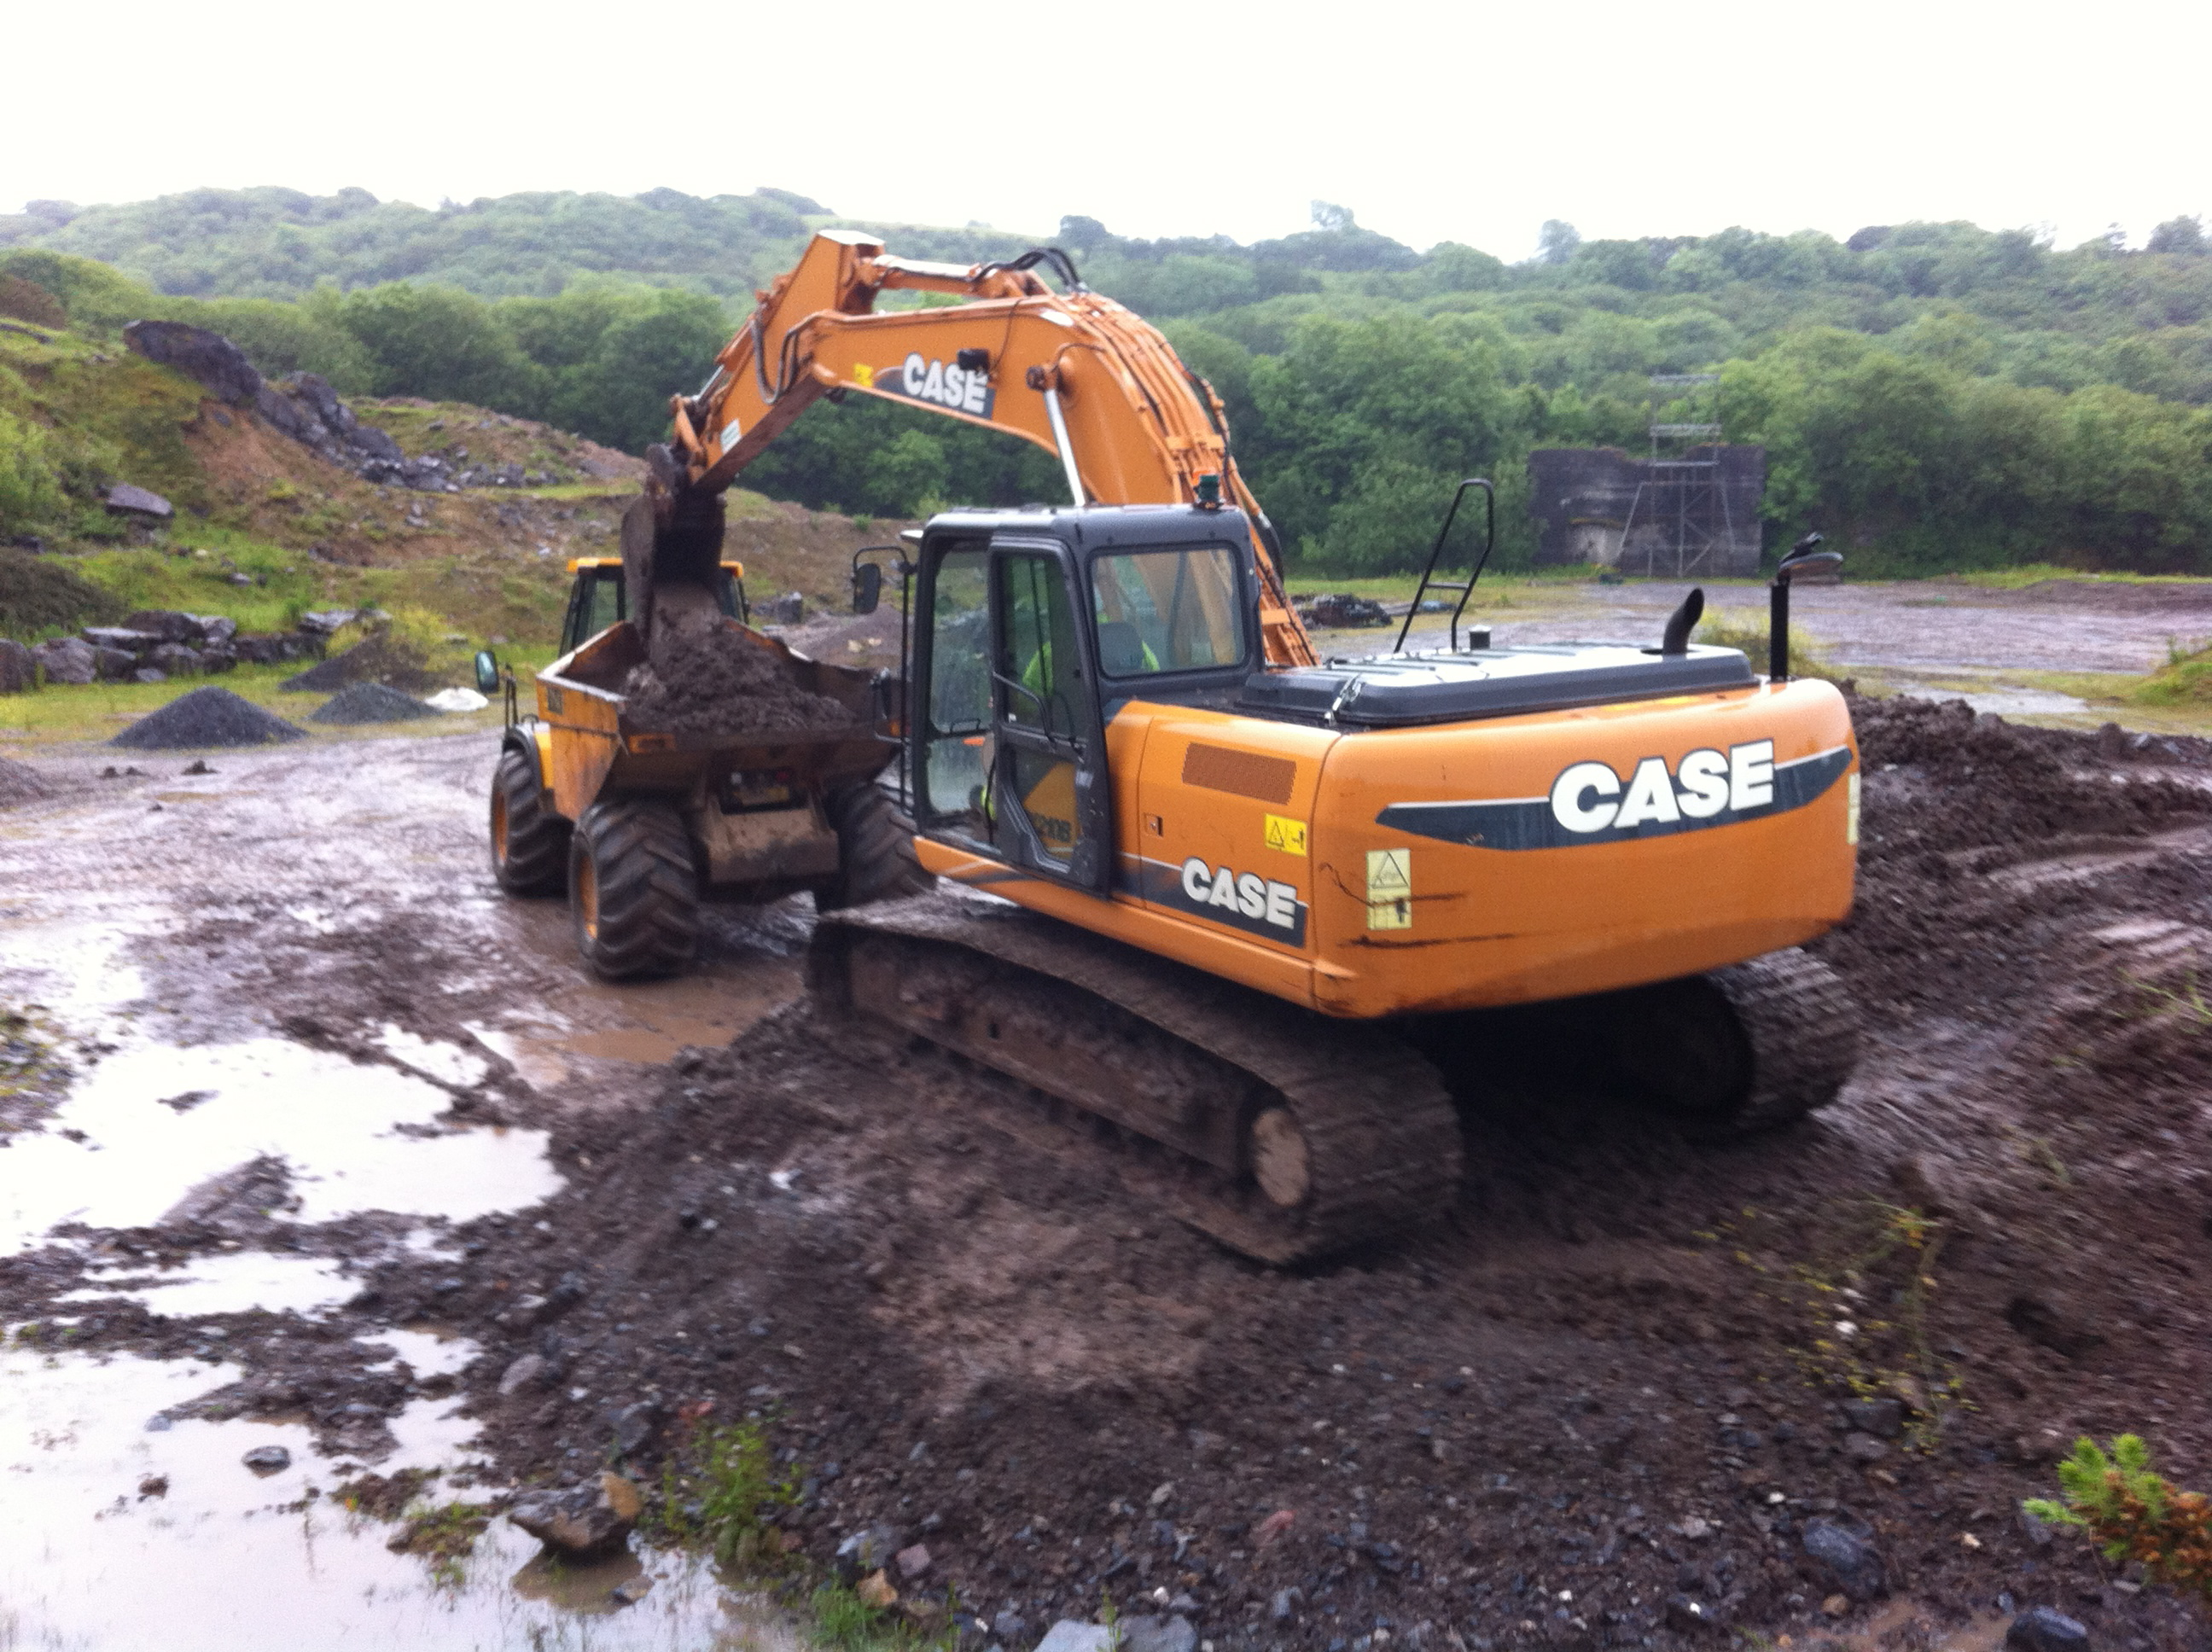 360 Excavator training – full foundation course (June 2019)